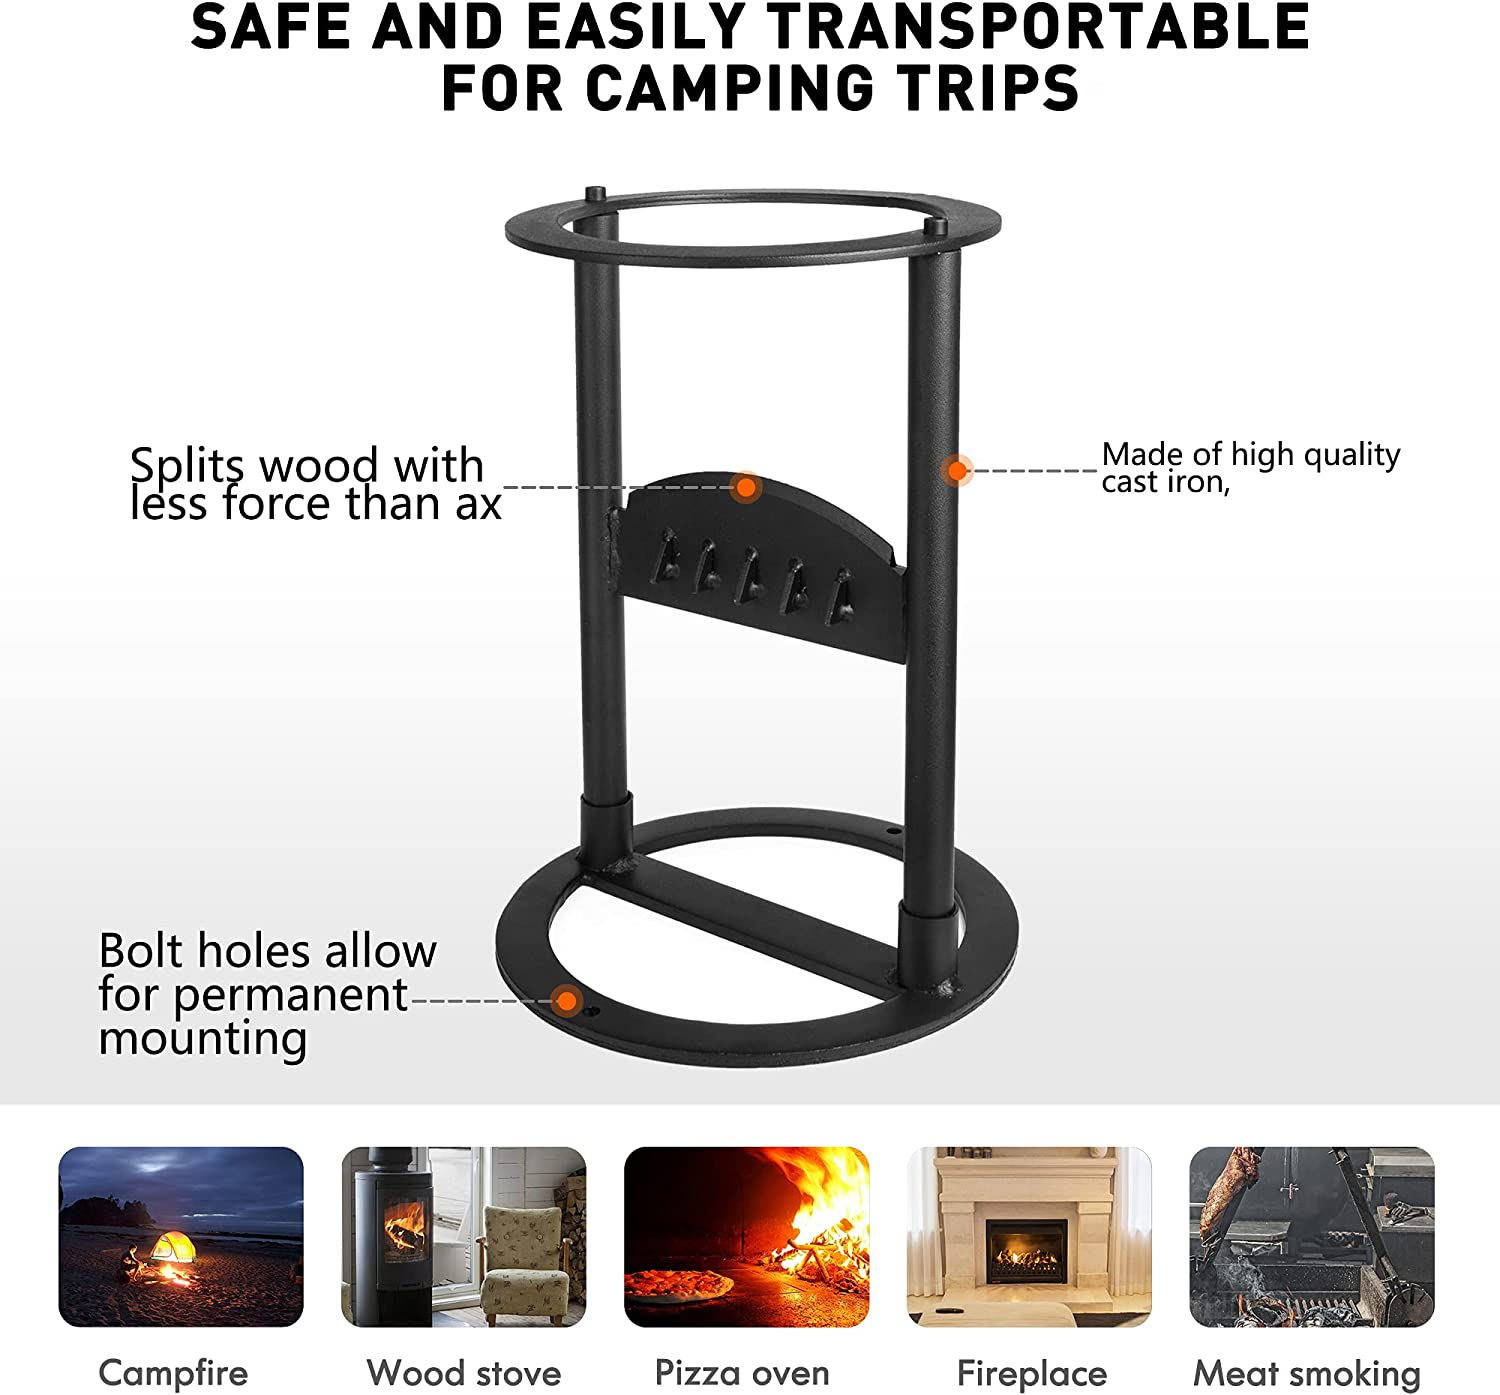 No More Axes Wood Kindling Splitter Safest Way to Cut Firewood No ...